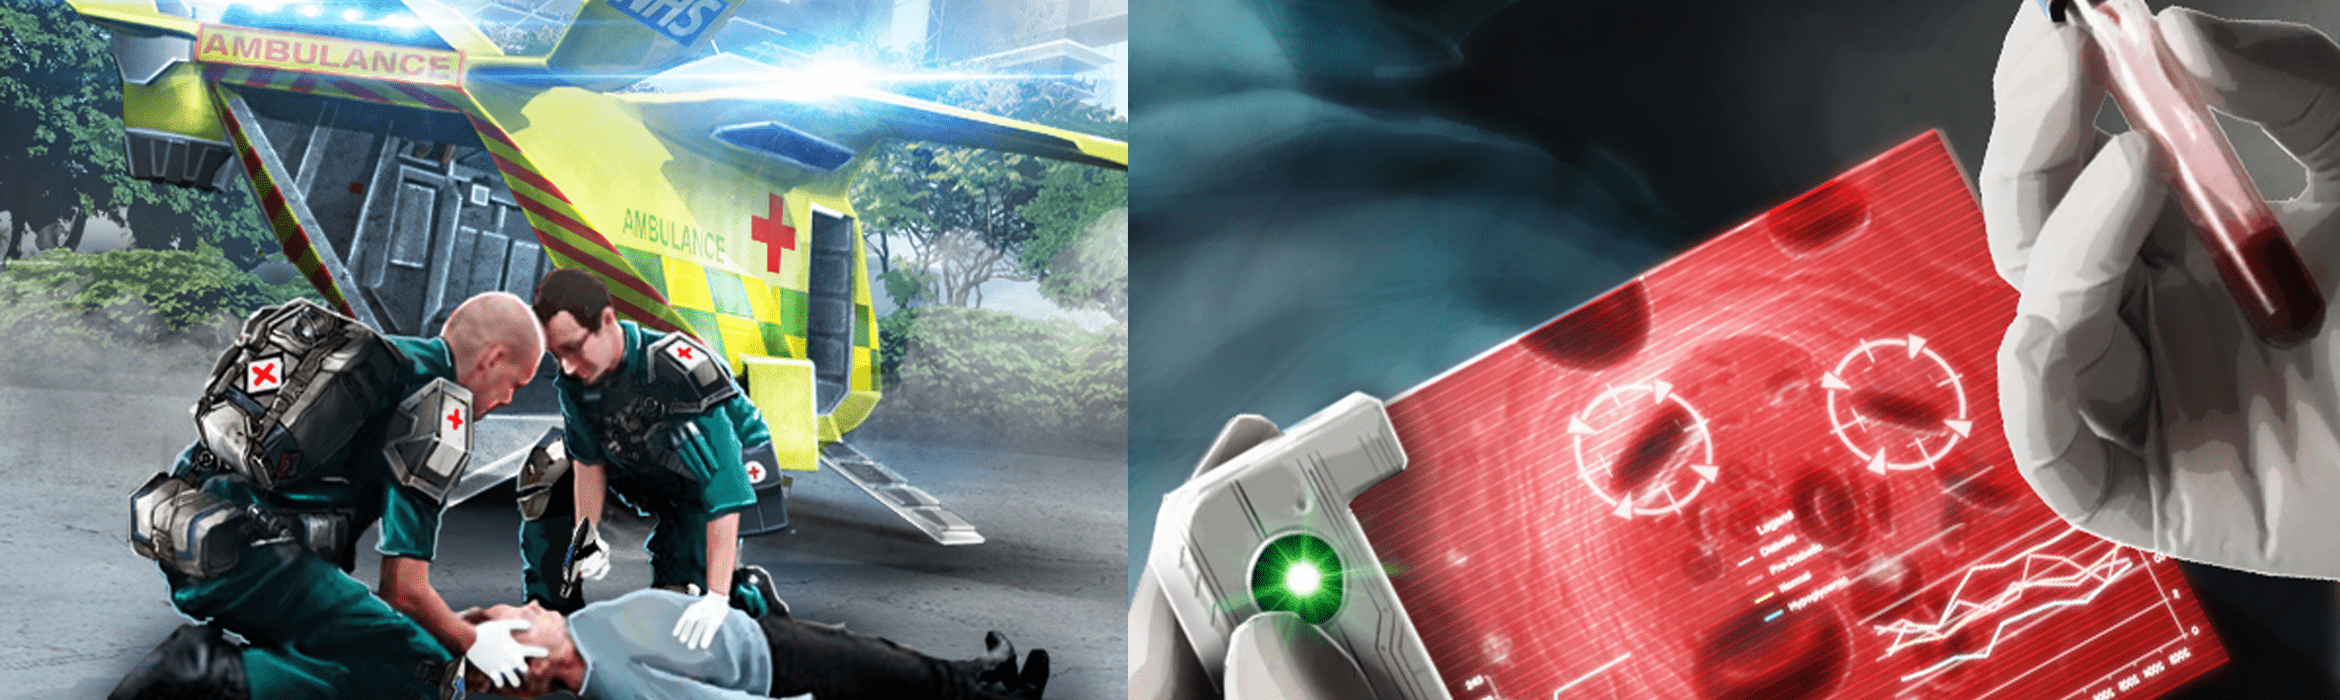 Paramedics use handheld diagnostics and nanotechnology to inspect a patient's blood outside the hospital of the future.